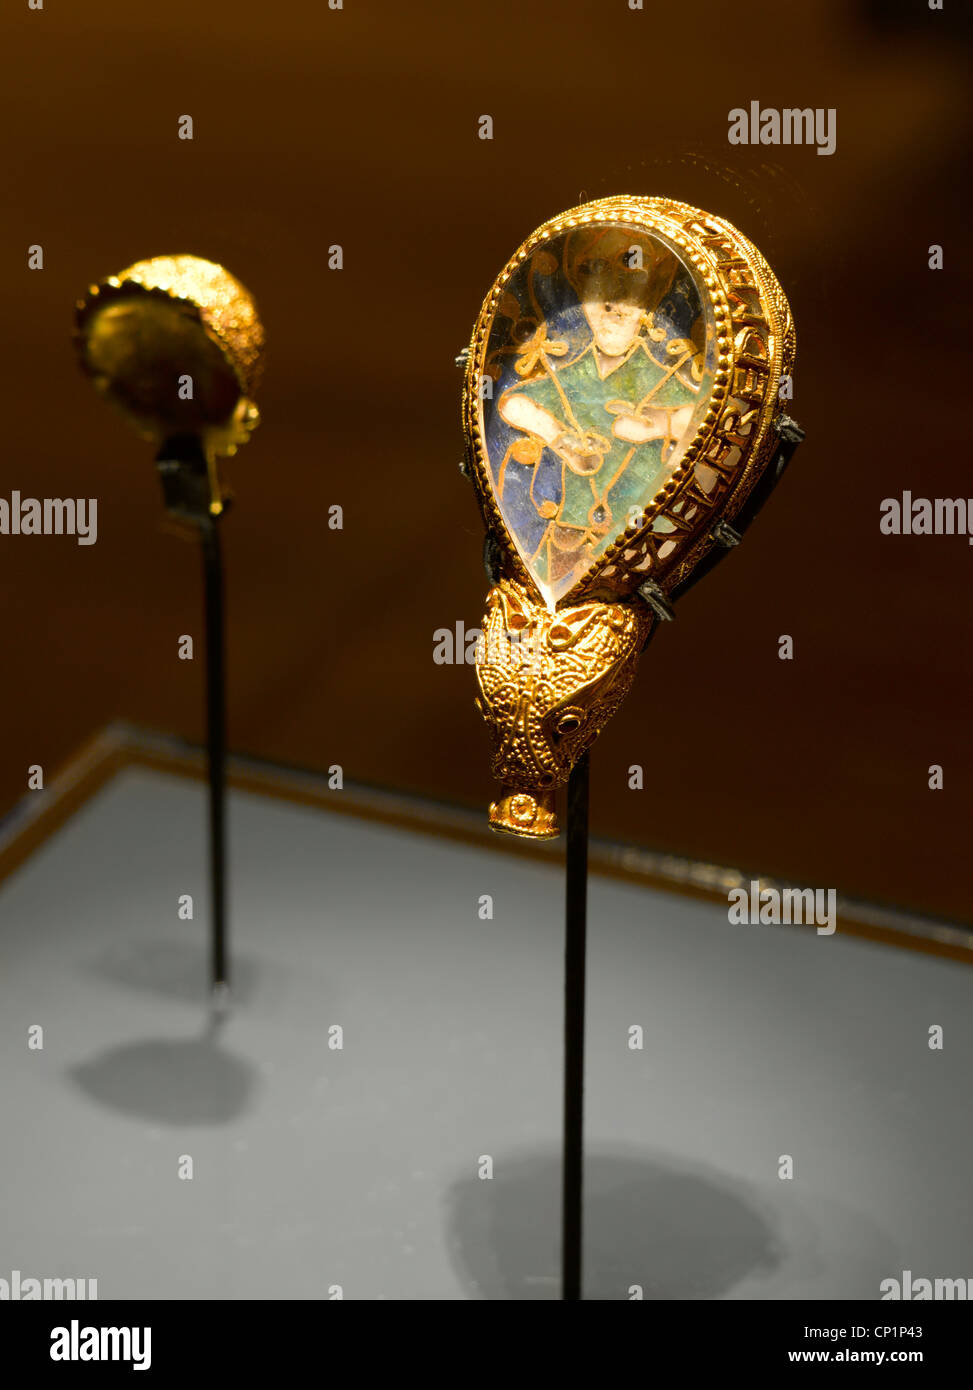 Display of Alfred Jewel, late 9th century Anglo-Saxon ornament in Ashmolean Museum - Stock Image